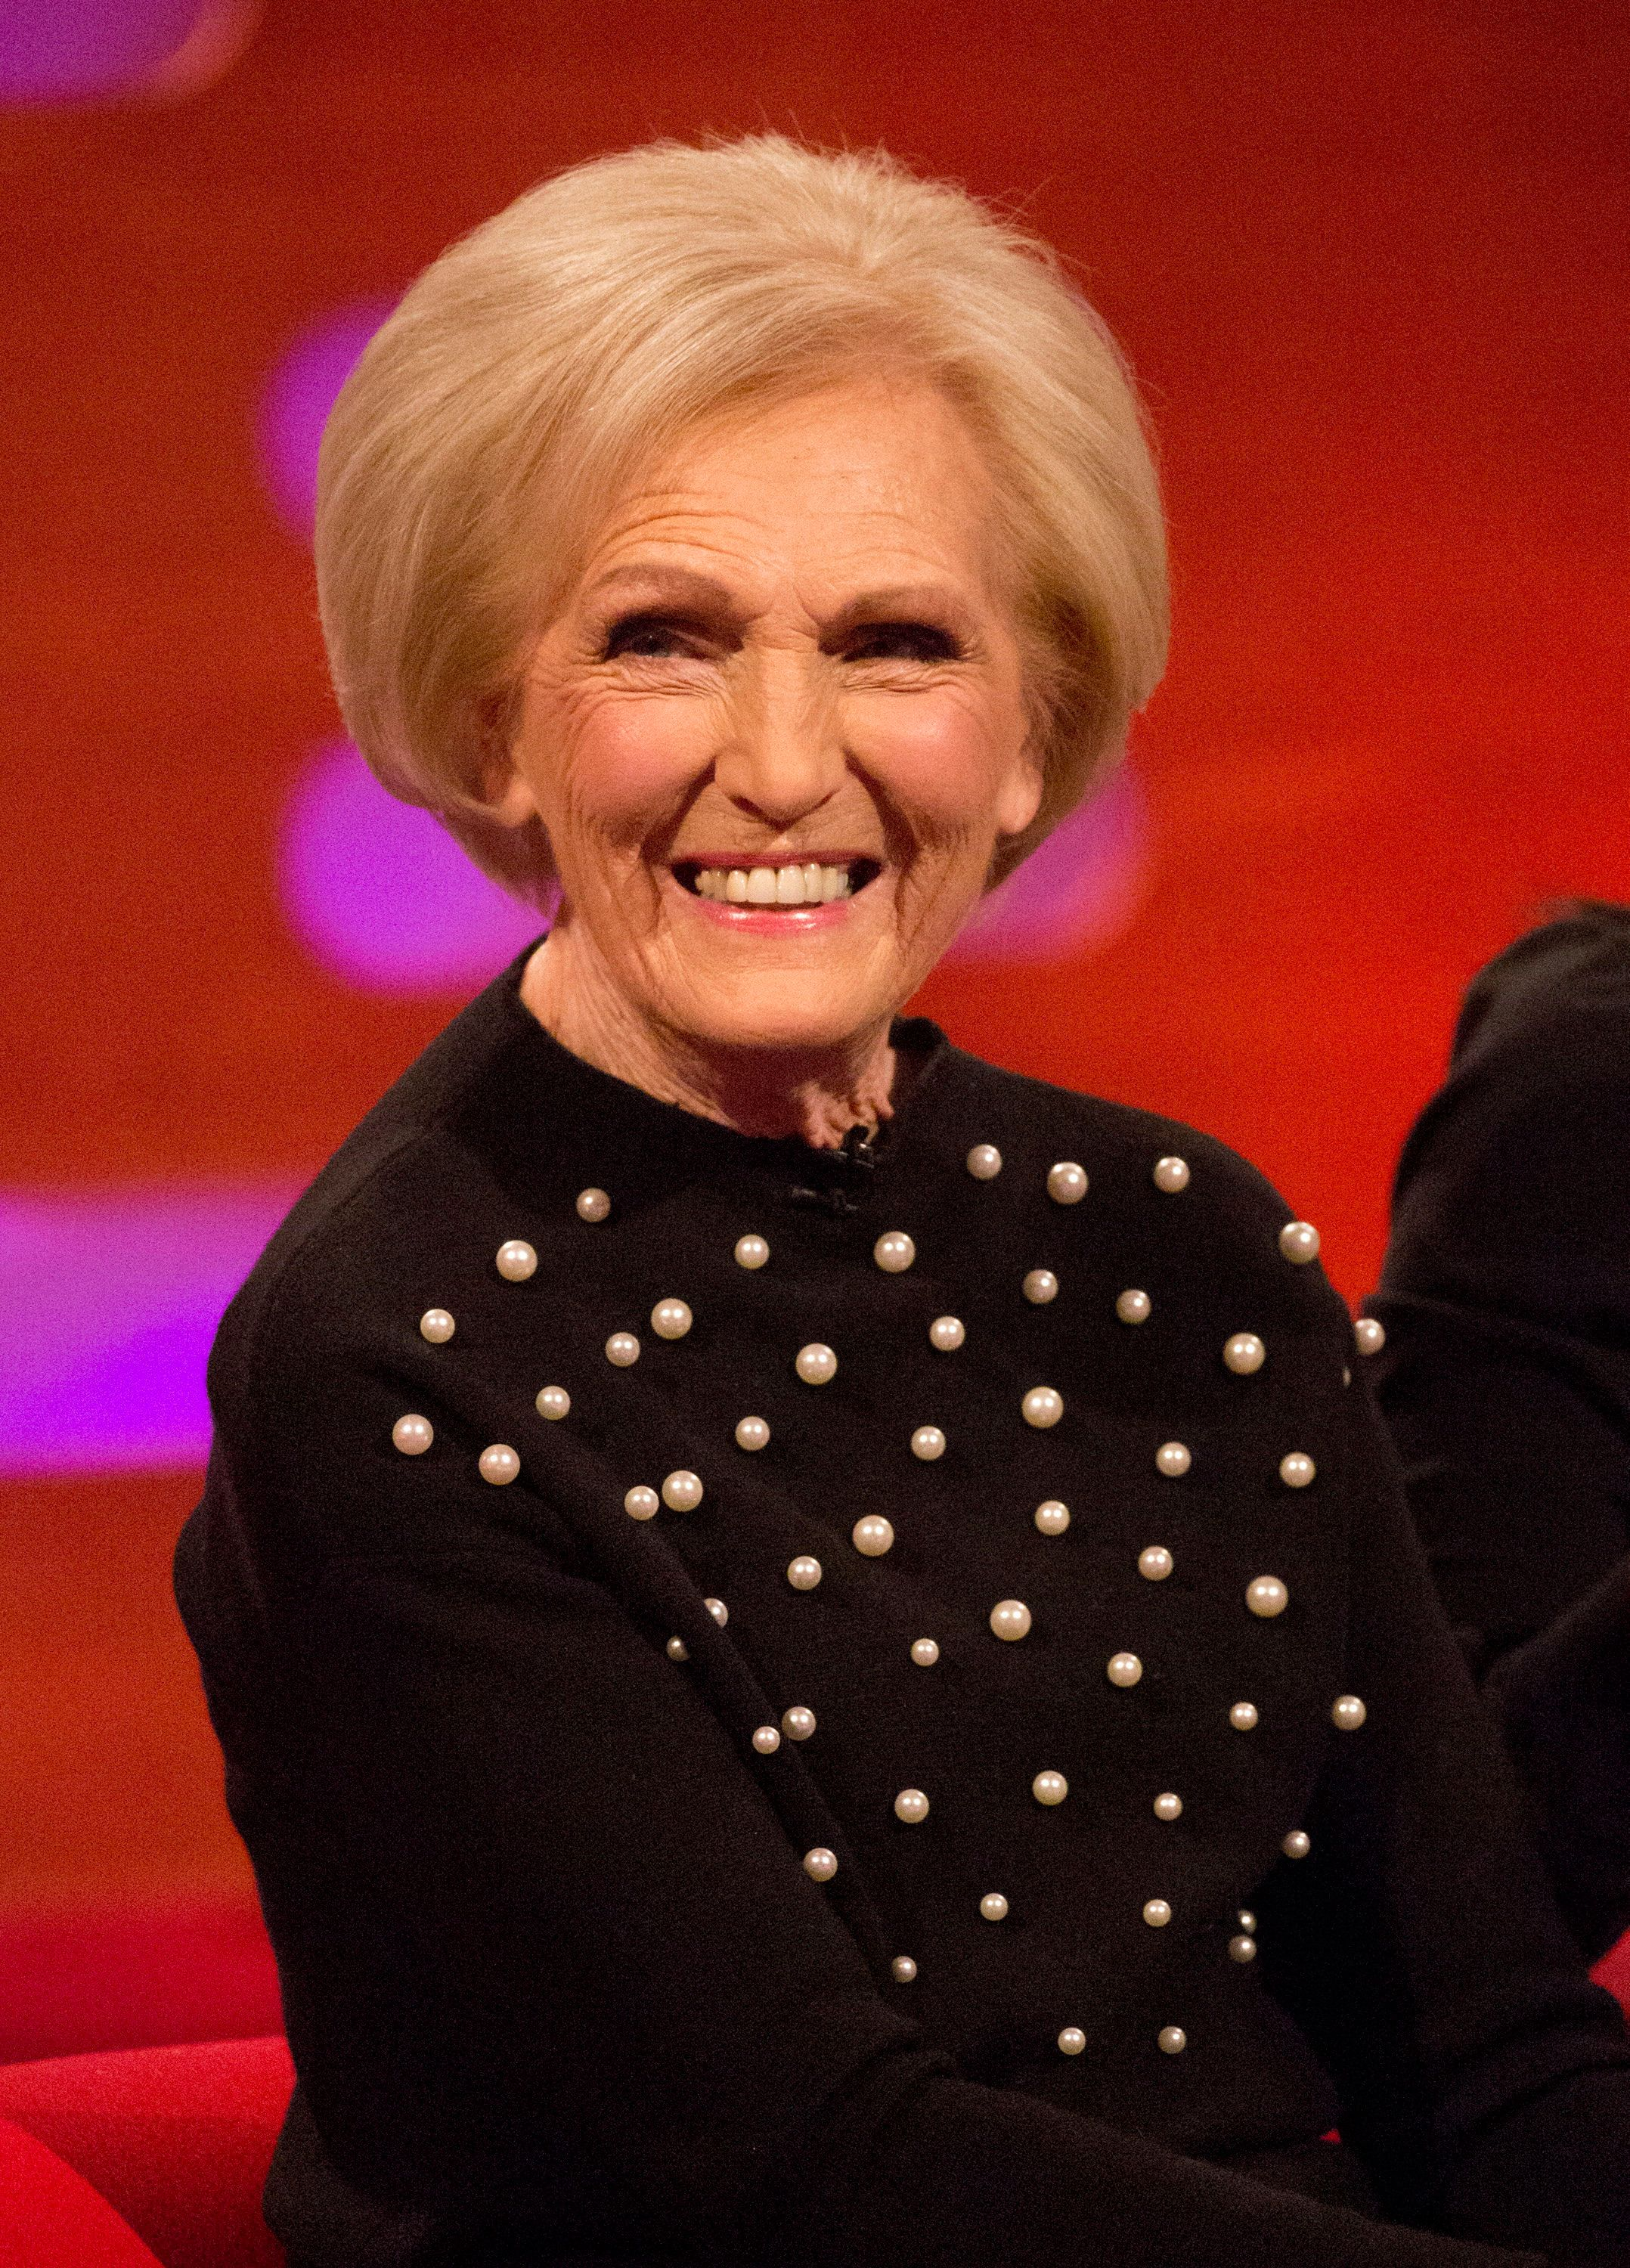 Mary Berry Was Once Arrested On Suspicion Of Smuggling Drugs. Yes, Really.